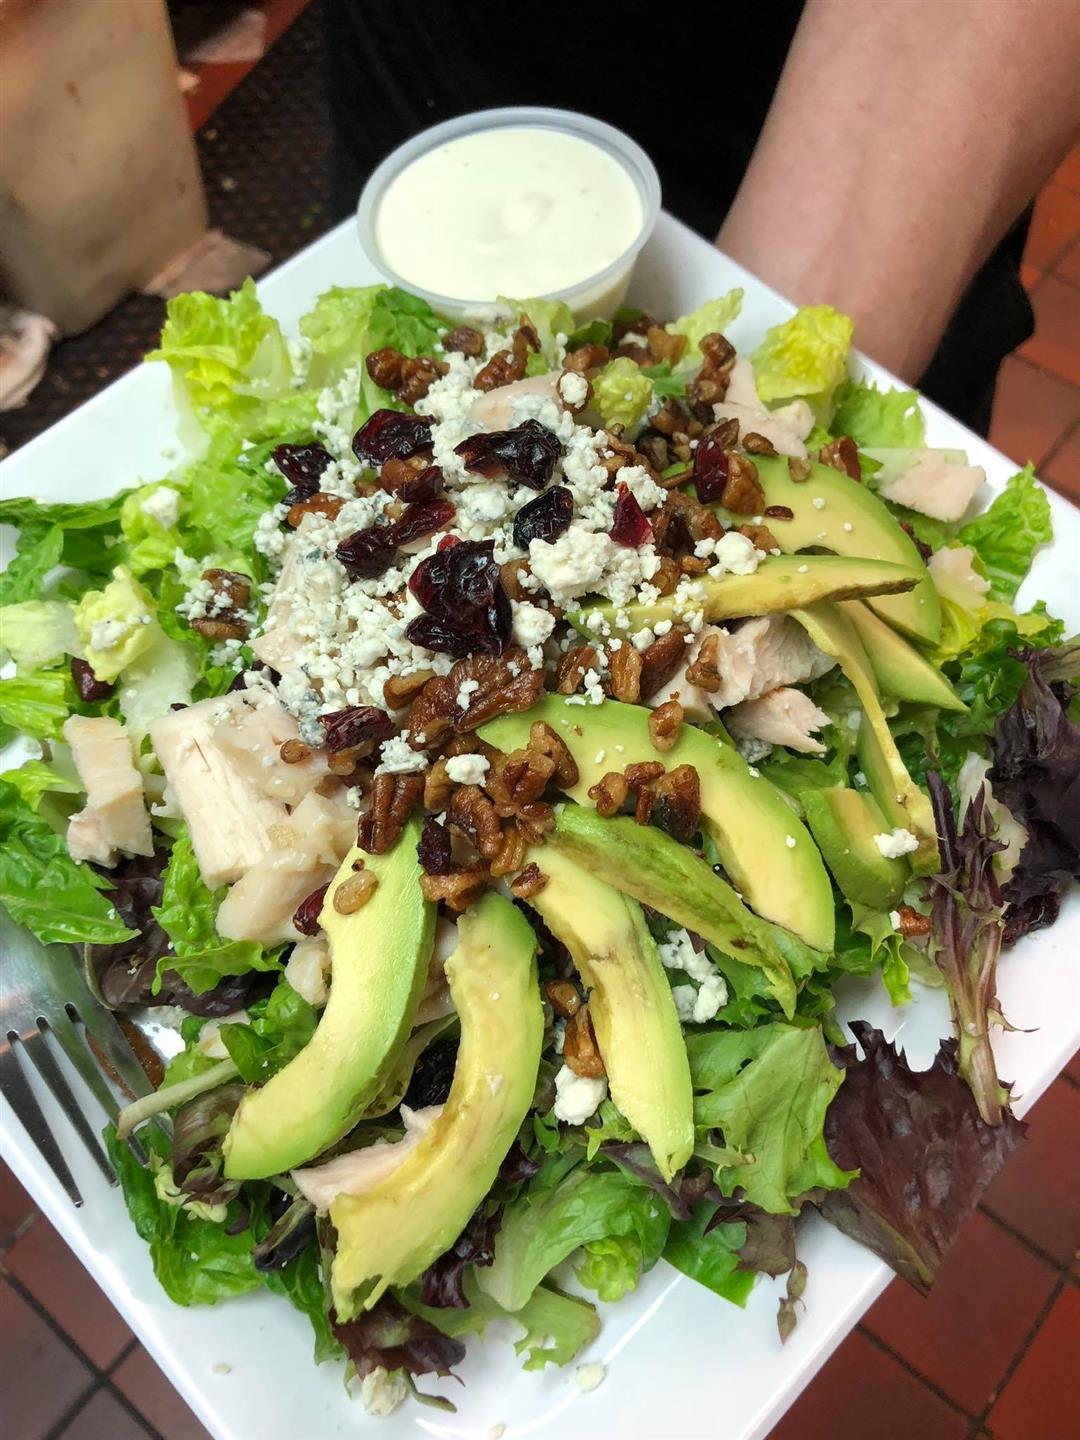 salad with avocado, chicken, cheese, pecans, and raisins on top